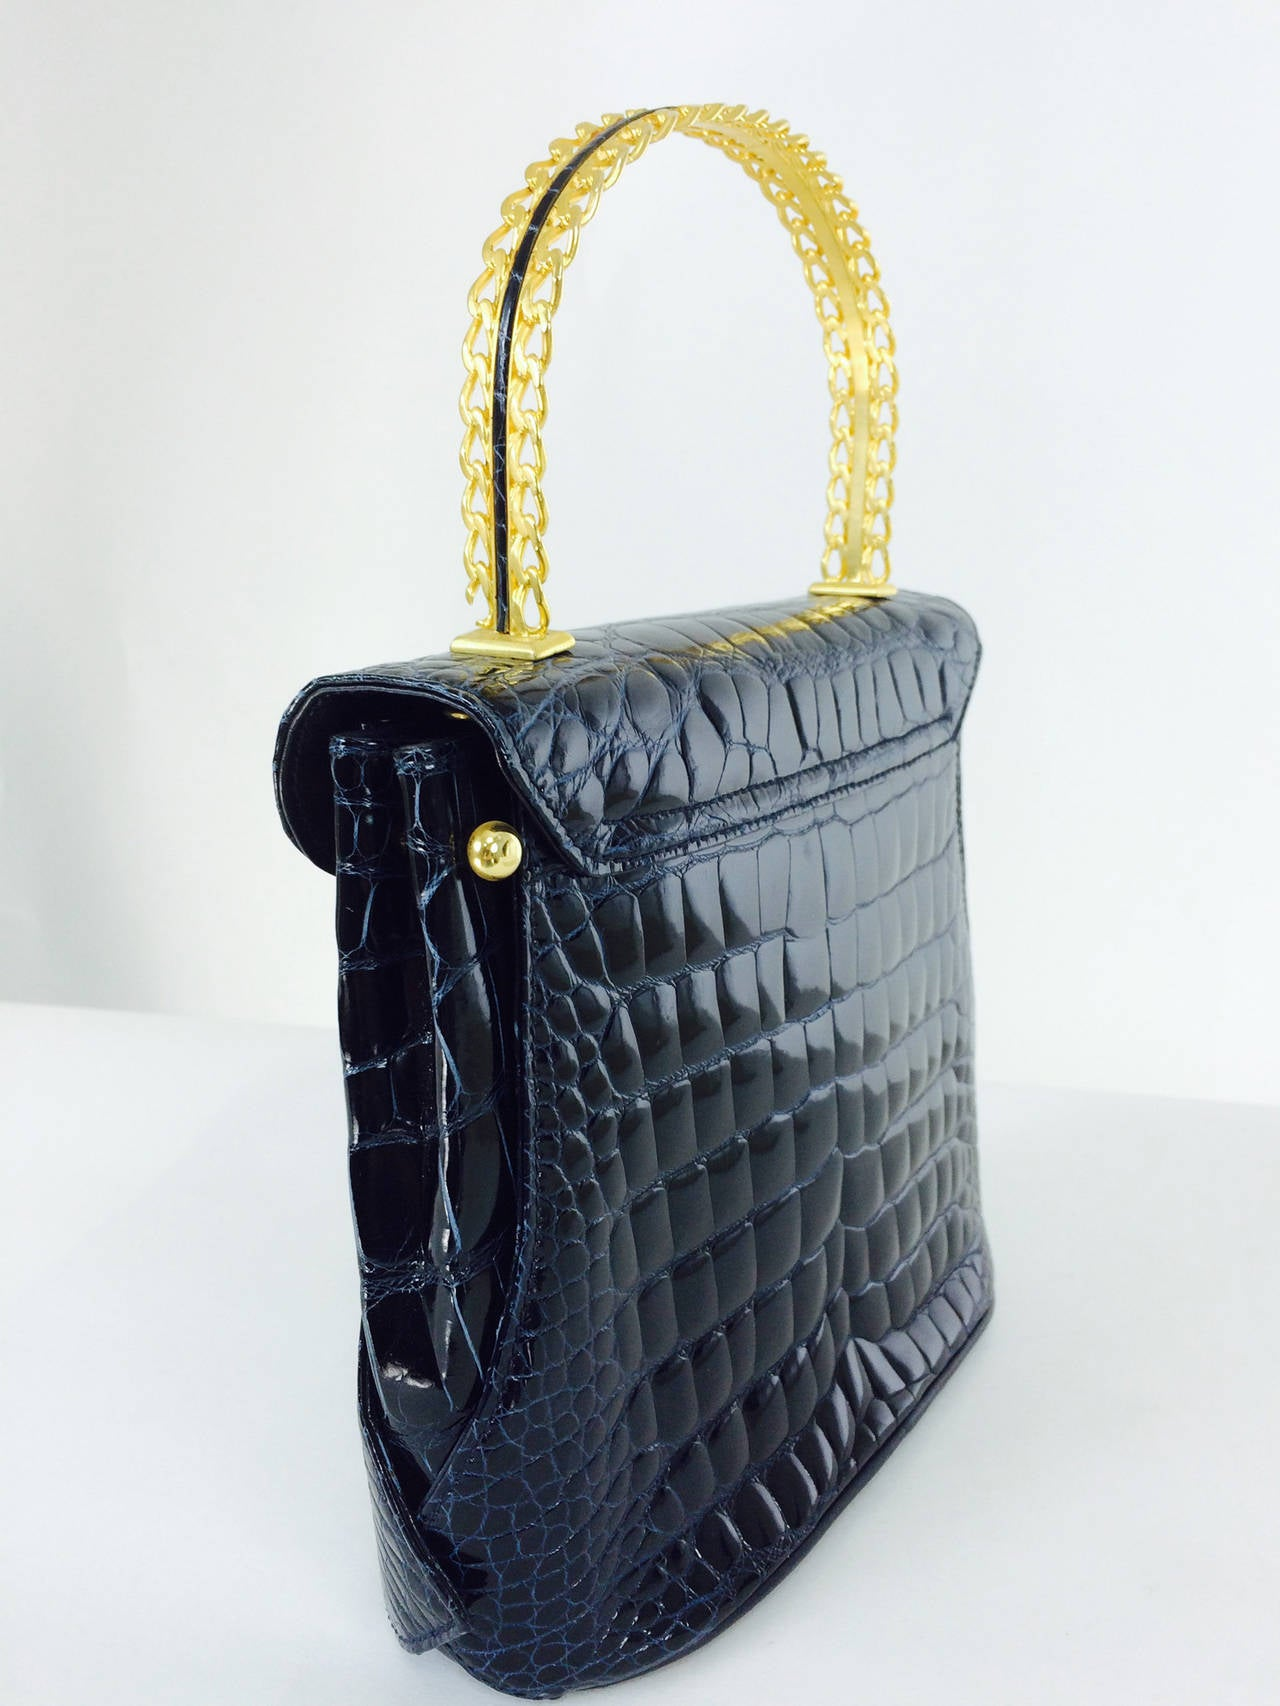 Lana Marks Lana of London navy blue glazed alligator handbag 1980s For Sale 1